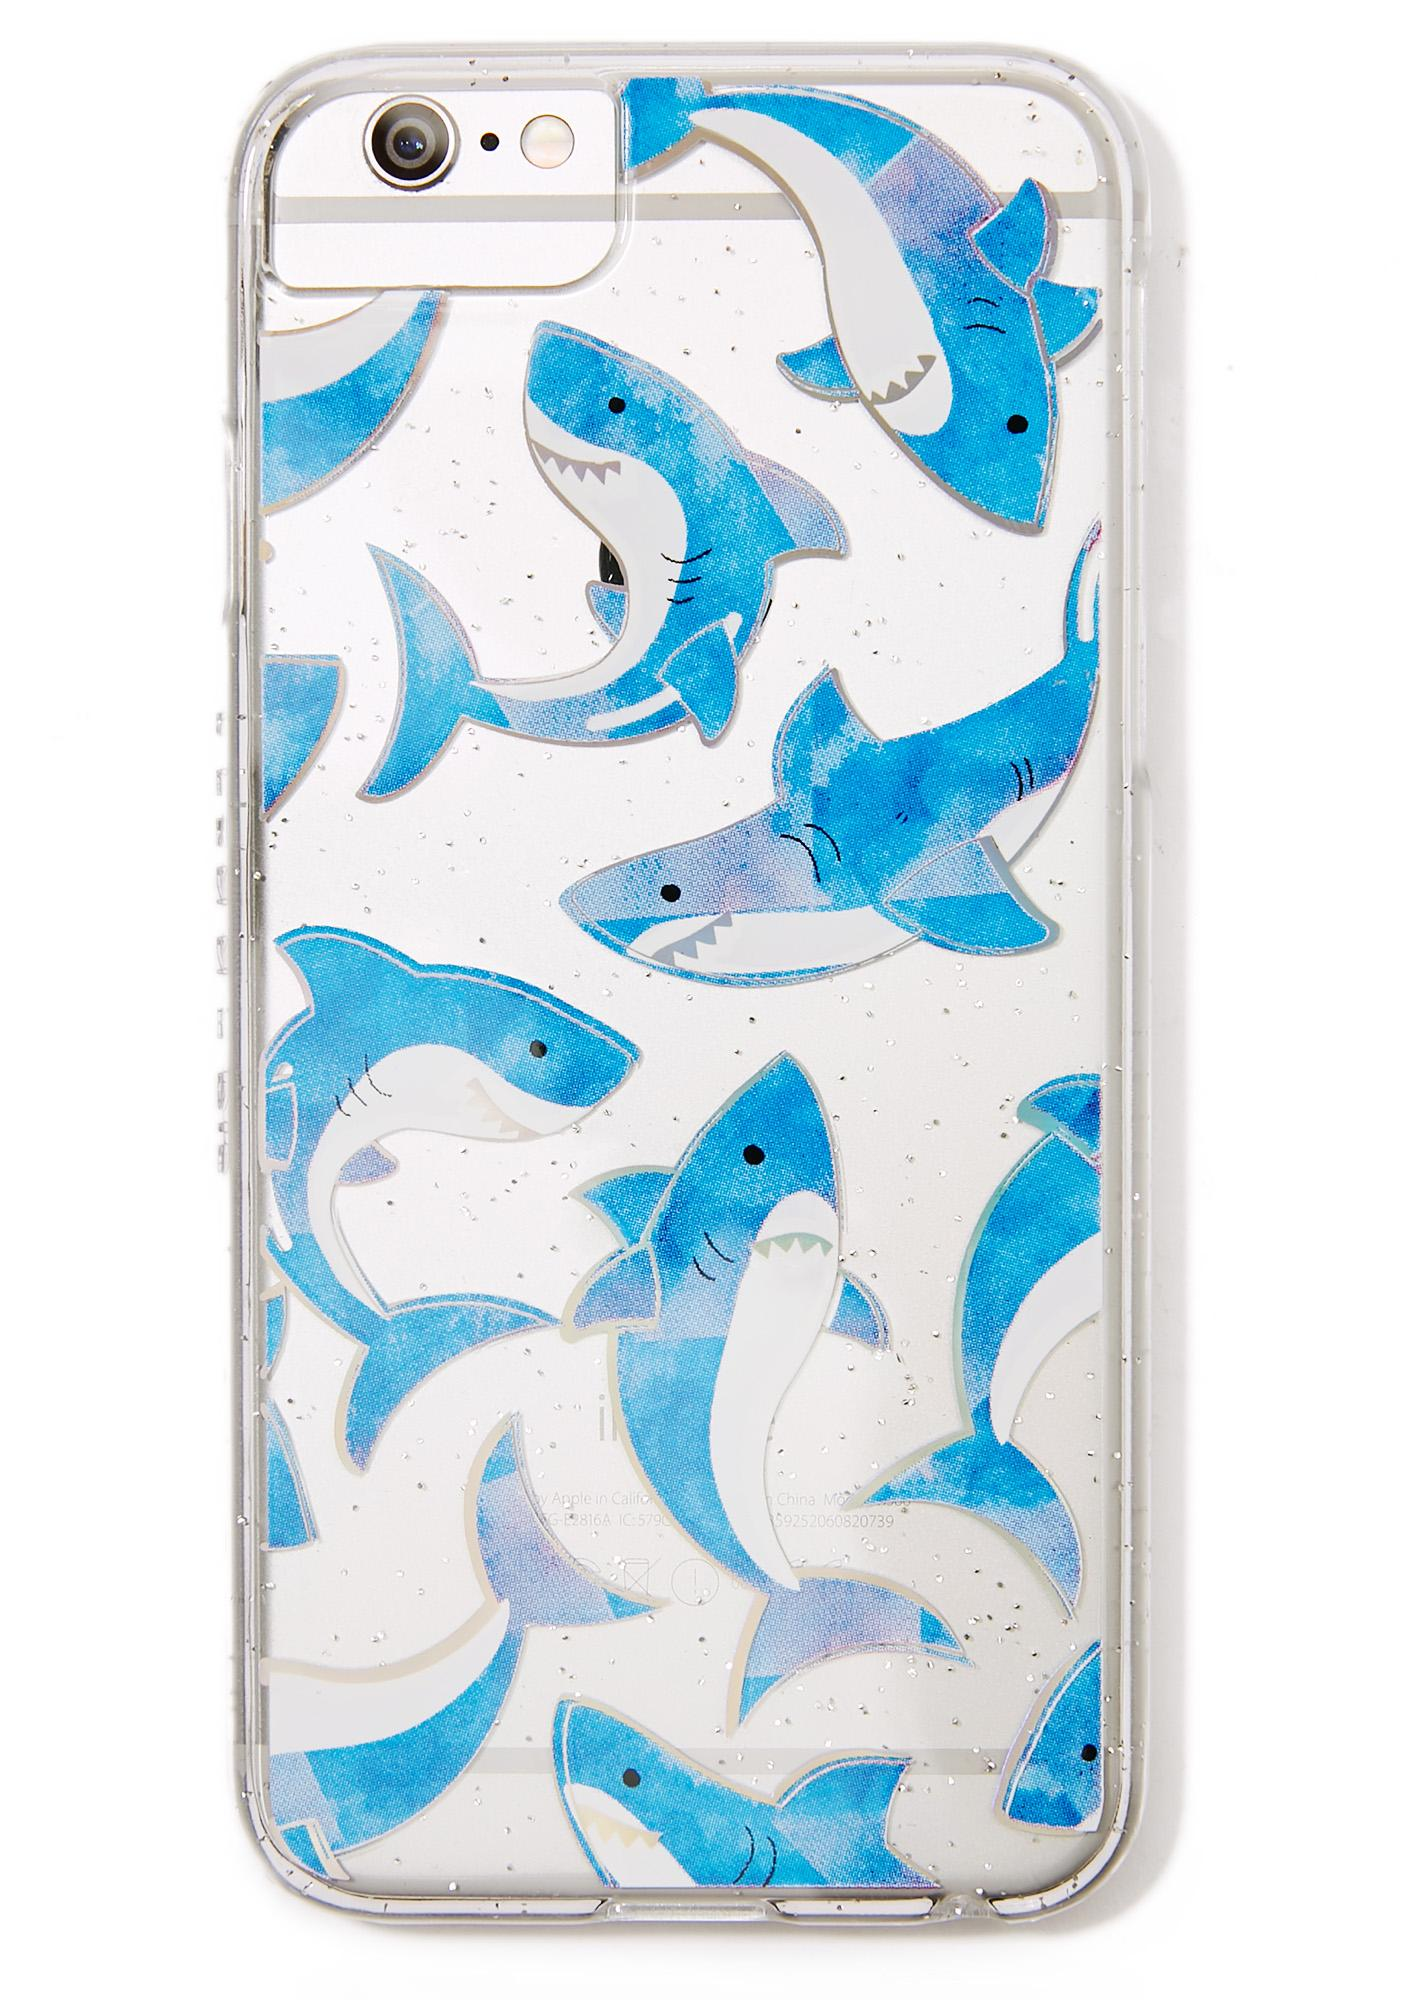 Skinnydip Jaws iPhone Case